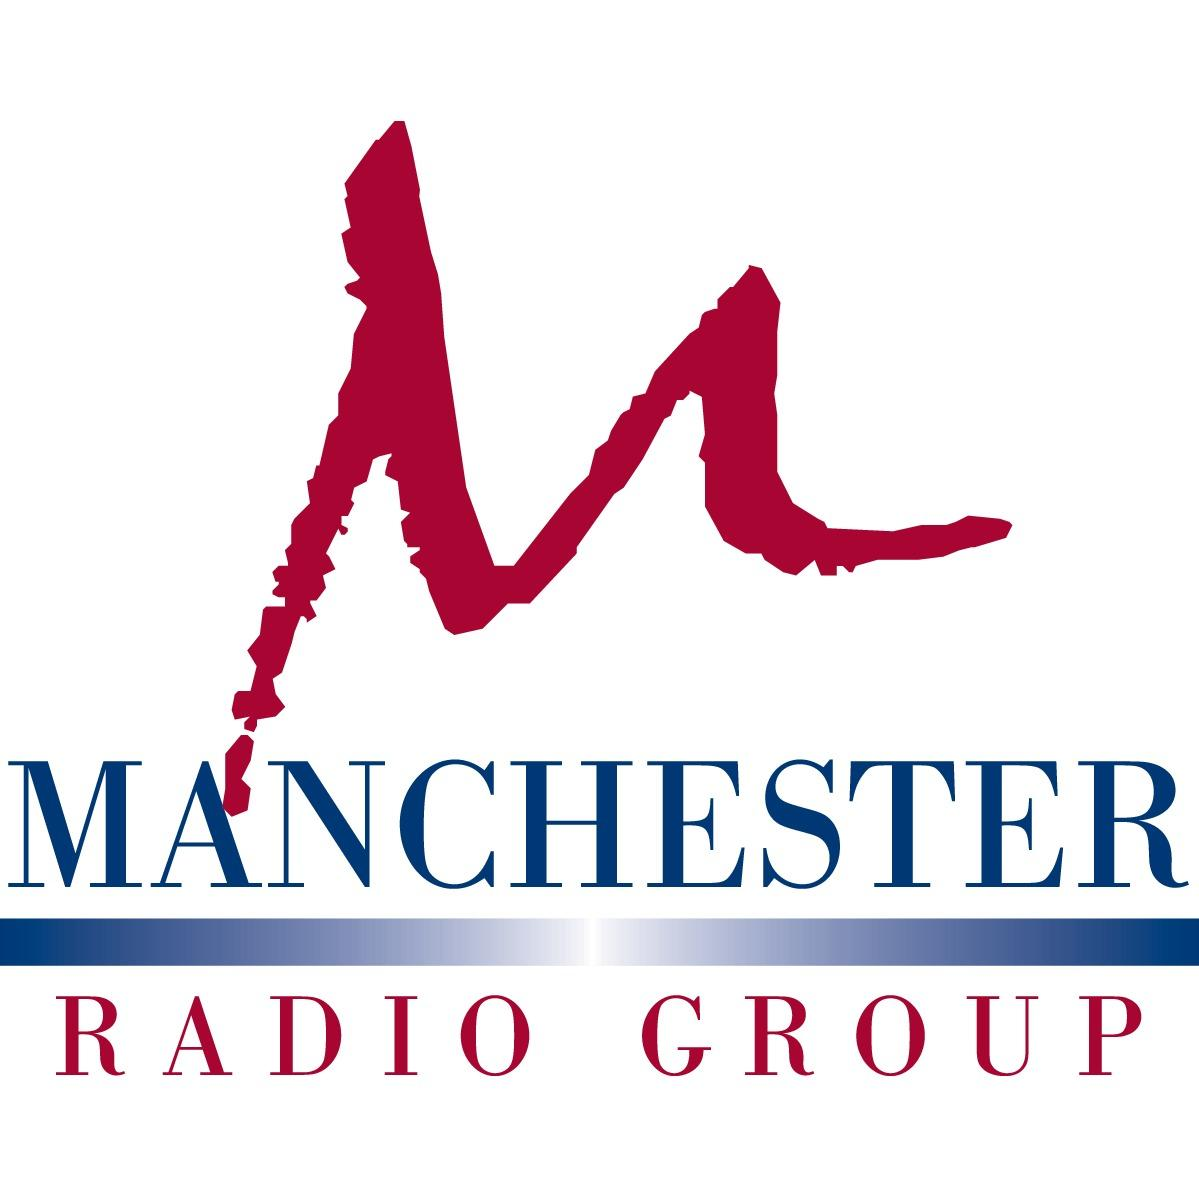 Manchester Radio Group - Manchester, NH 03101 - (603)669-5777 | ShowMeLocal.com